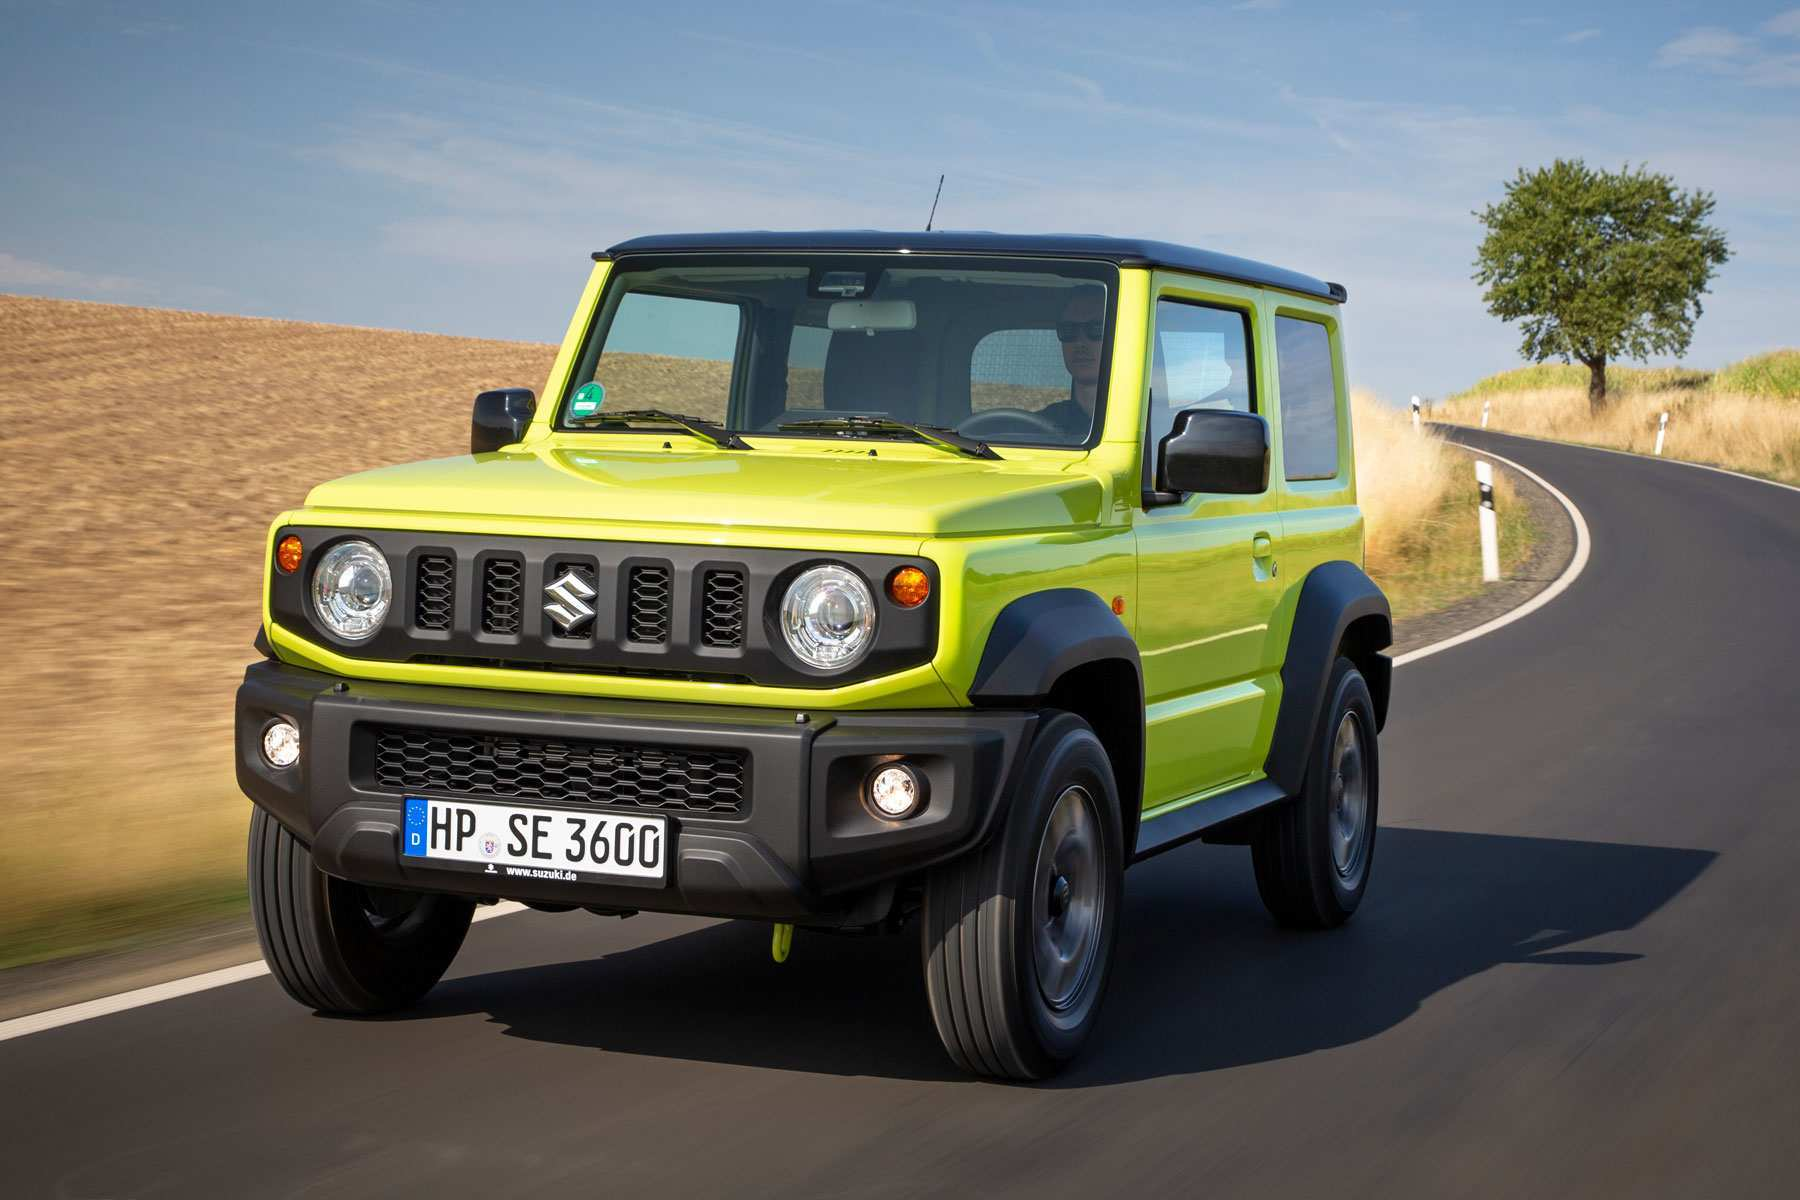 56 Gallery of Suzuki Jimny 2019 Model Prices by Suzuki Jimny 2019 Model